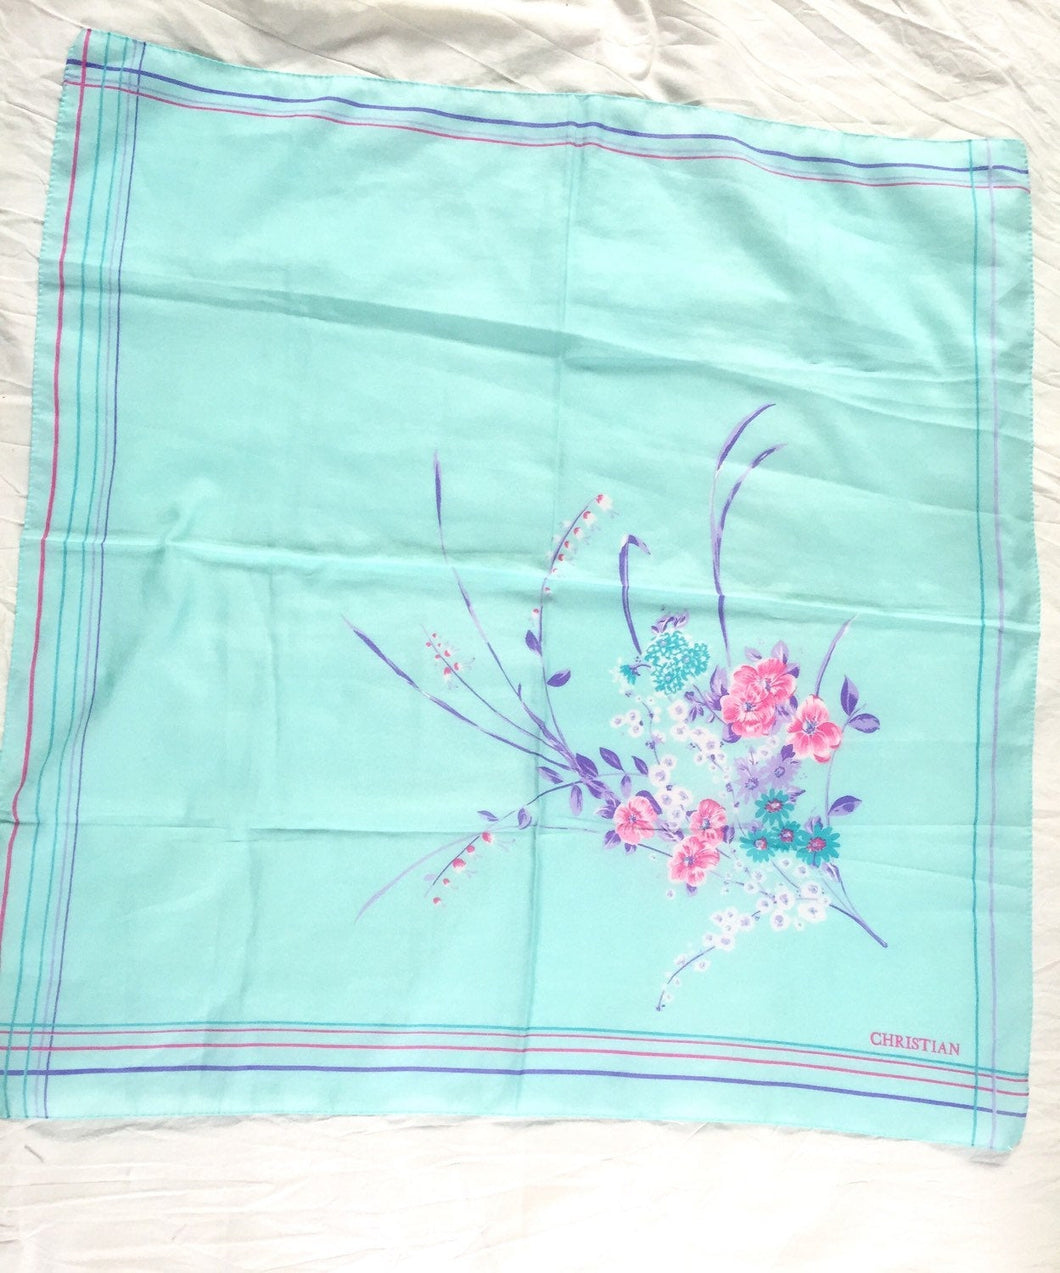 Mint Green Square Scarf Aqua CHRISTIAN Floral Vintage Square Scarf in Seafoam Green